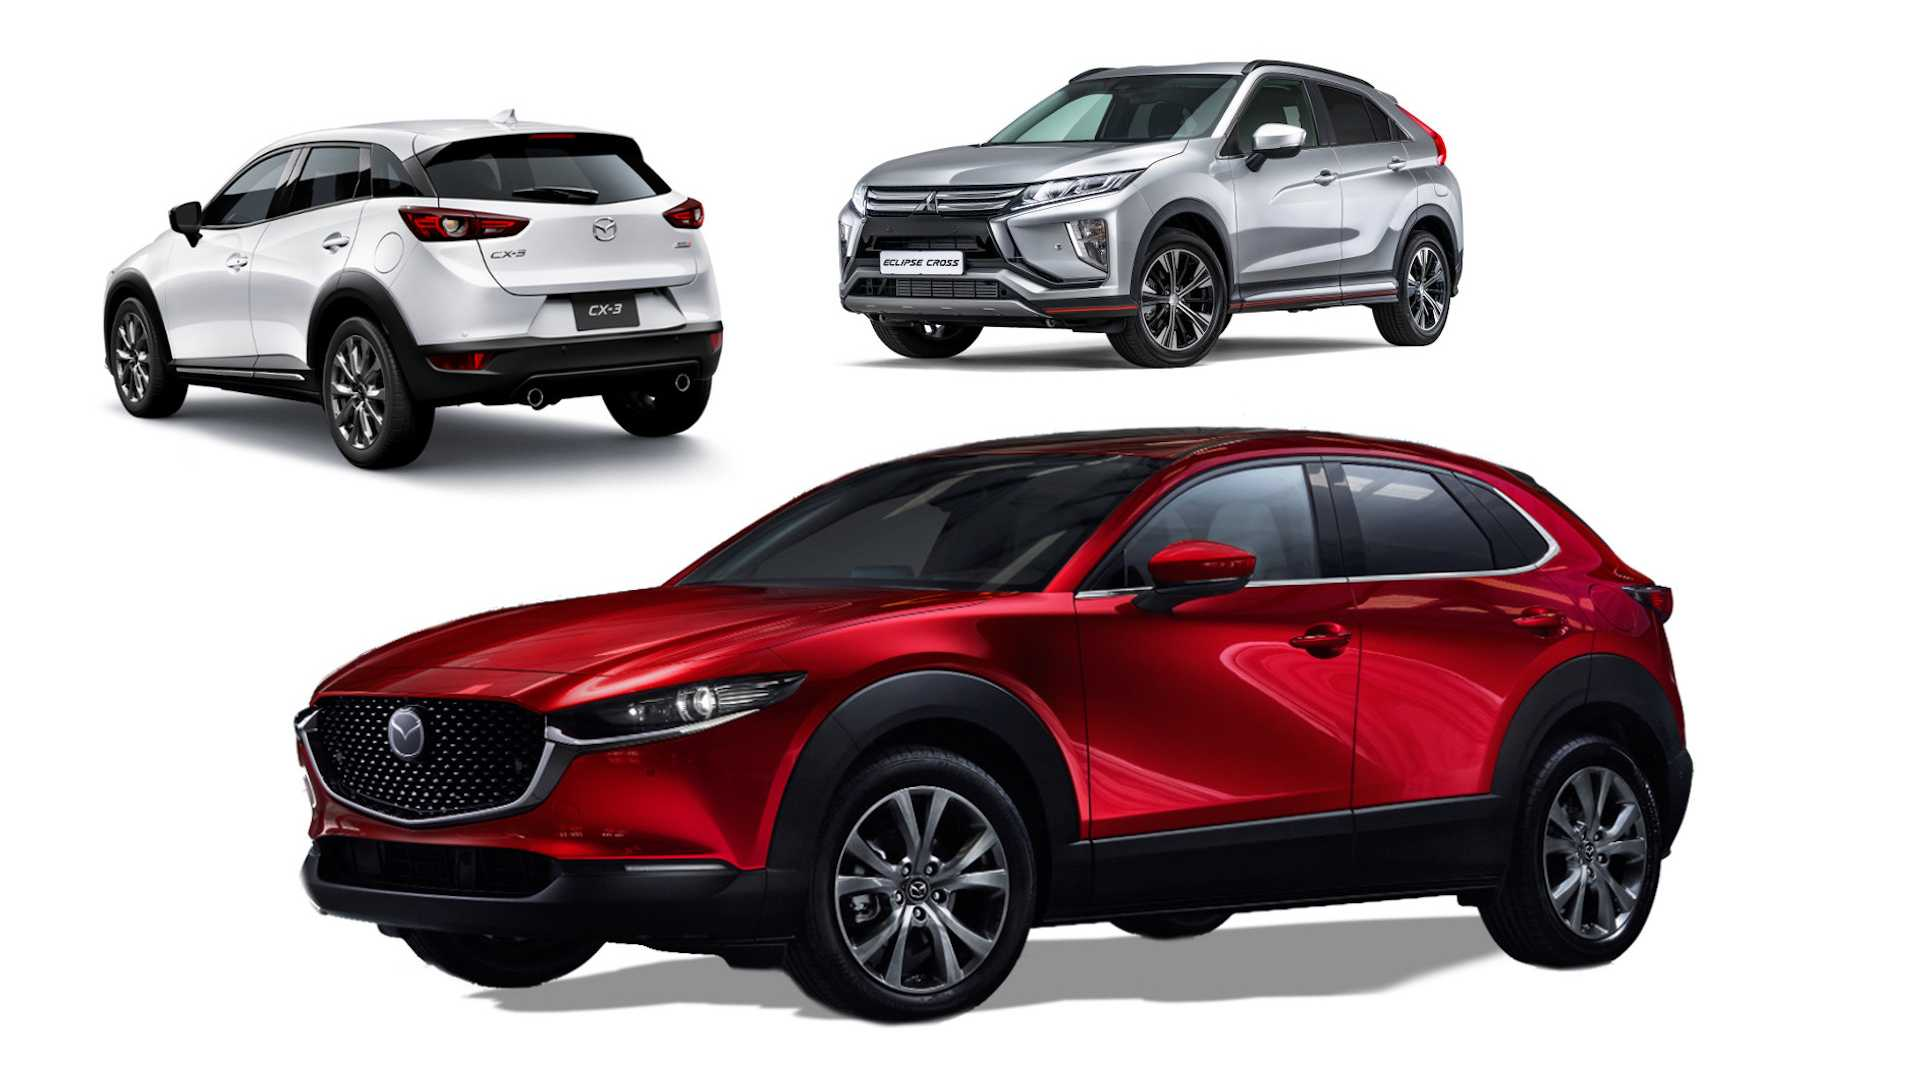 56 New Mazda Cx 3 Hybrid 2020 Redesign And Concept